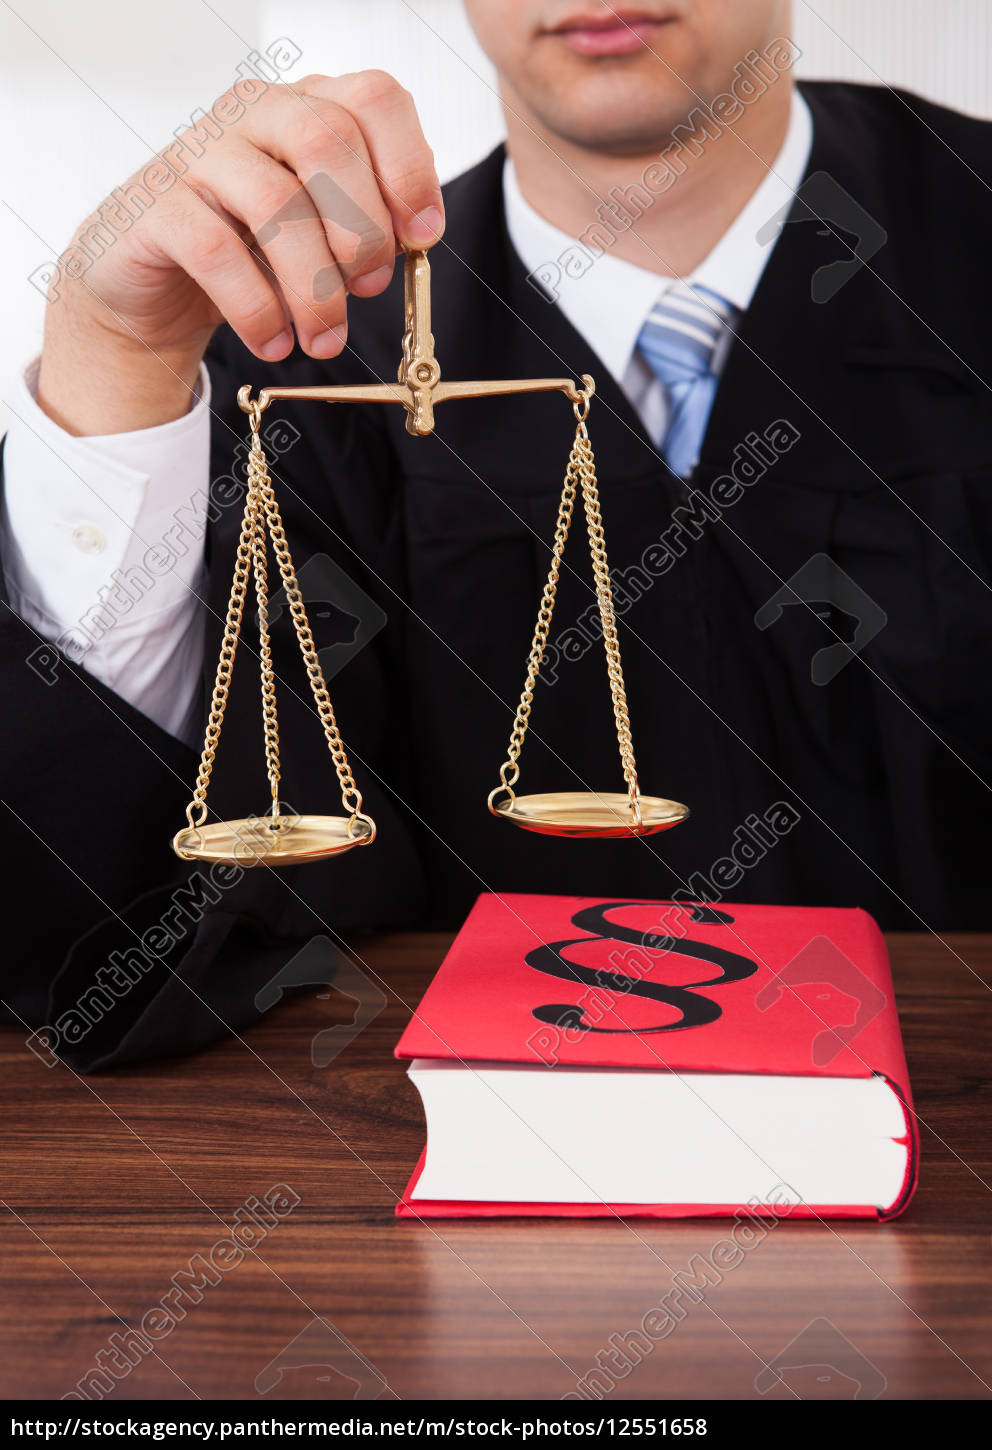 judge, holding, weight, scale, in, courtroom - 12551658